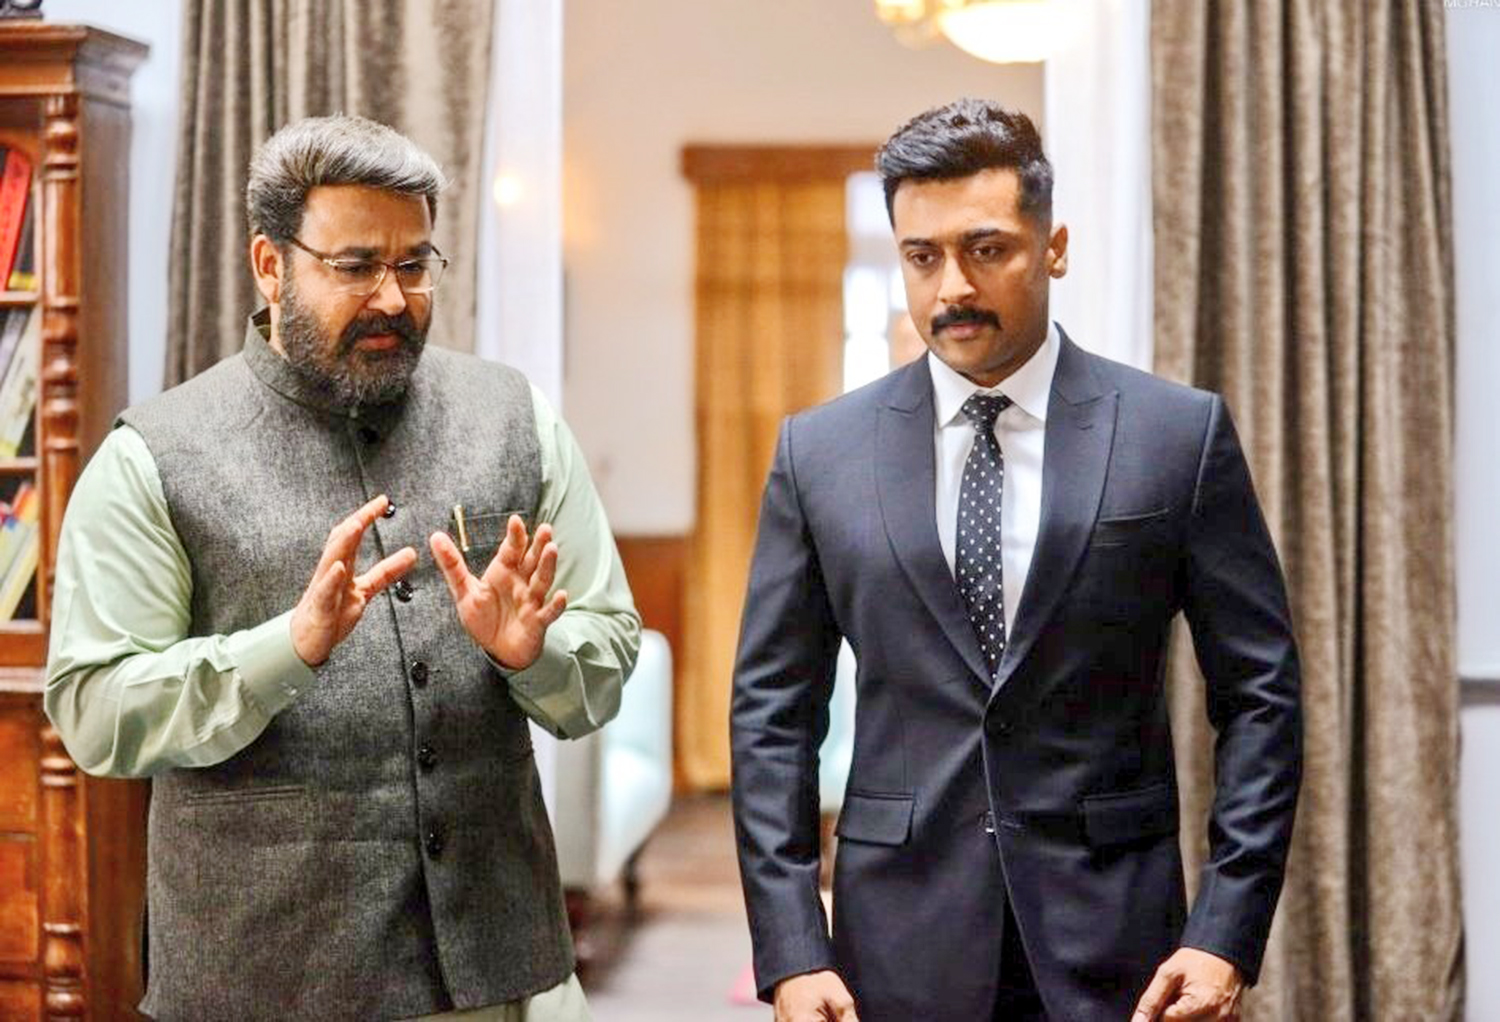 Kaappaan,Kaappaan stills,Kaappaan film photos,Kaappaan movie stills,Kaappaan mohanlal and suriya stills,new stills mohanlal and suriya in kaappaan,kaappan mohanlal,kaappan suriya stills,mohanlal's latest stills kaappaan,kaappaan mohanlal suriya exclusive stills